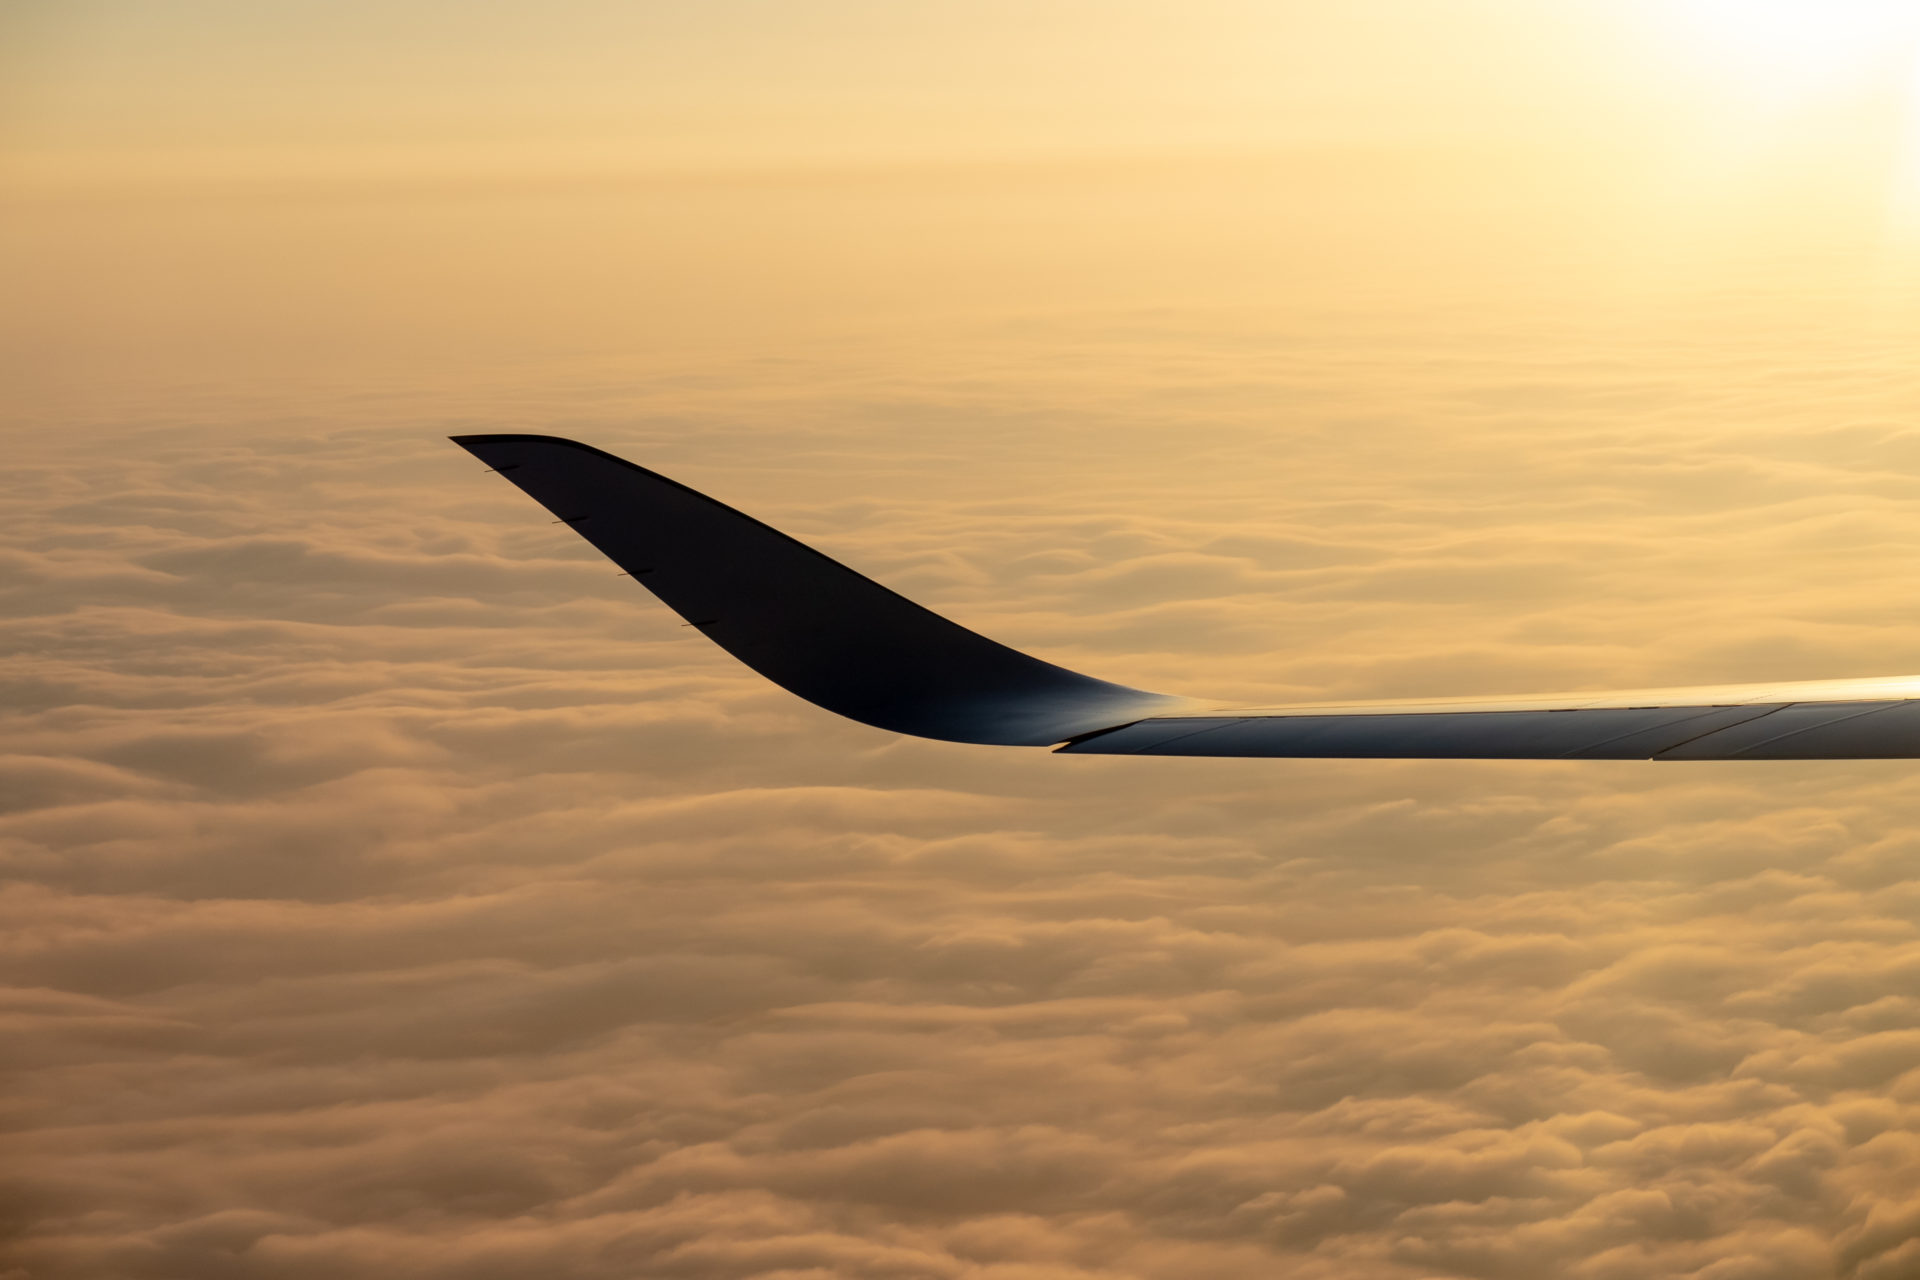 Airplane winglet over cloud carpet at sunset